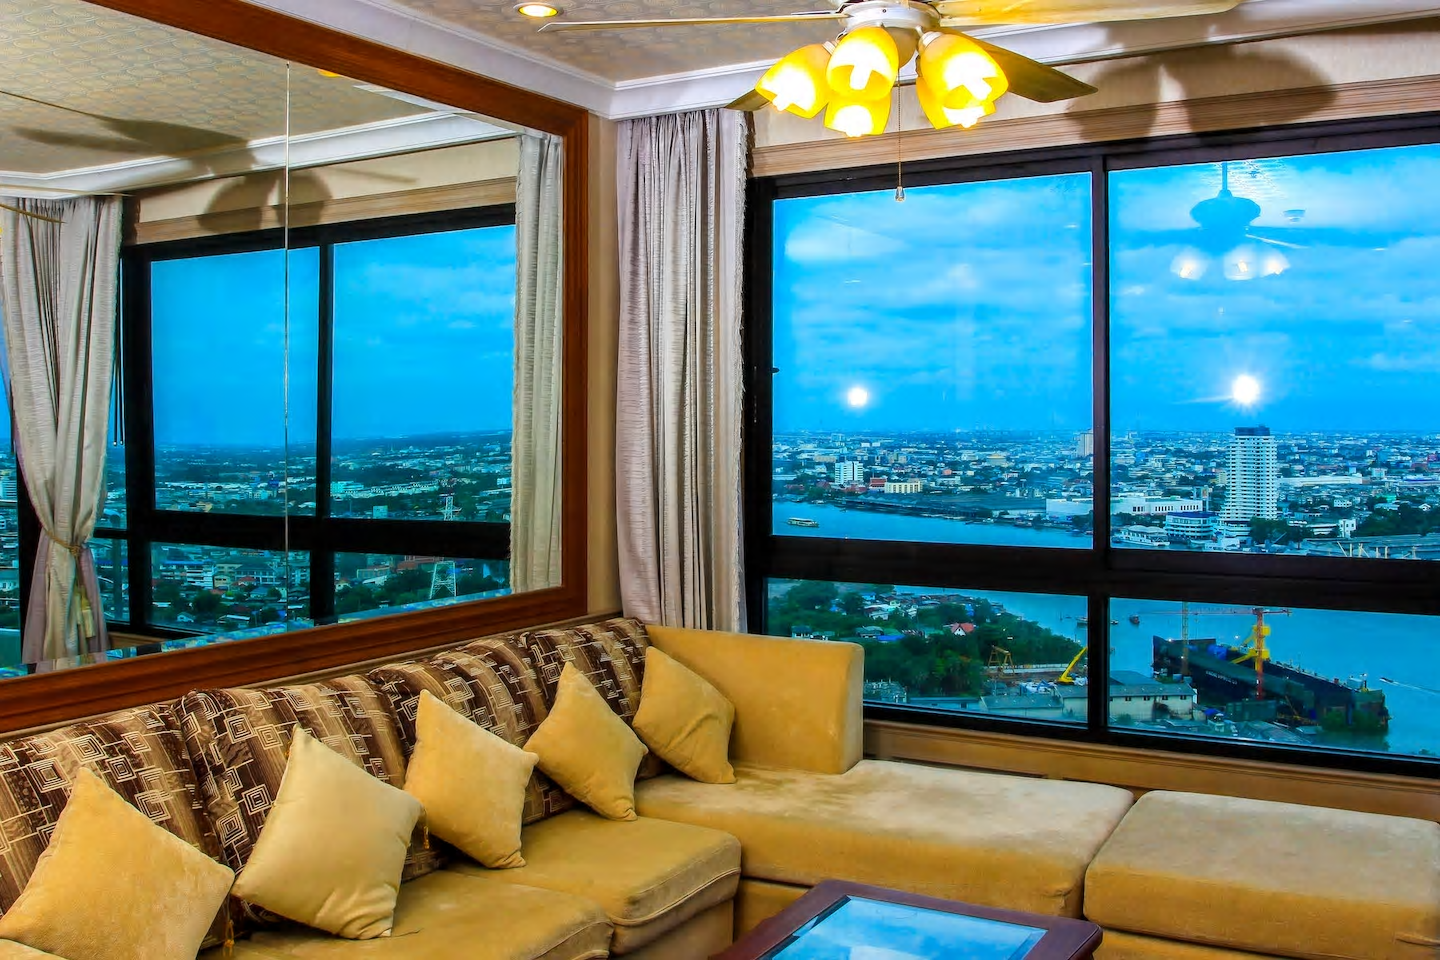 RIVERFRONT 2BR WITH AMAZING VIEW NEAR ASIATIQUE